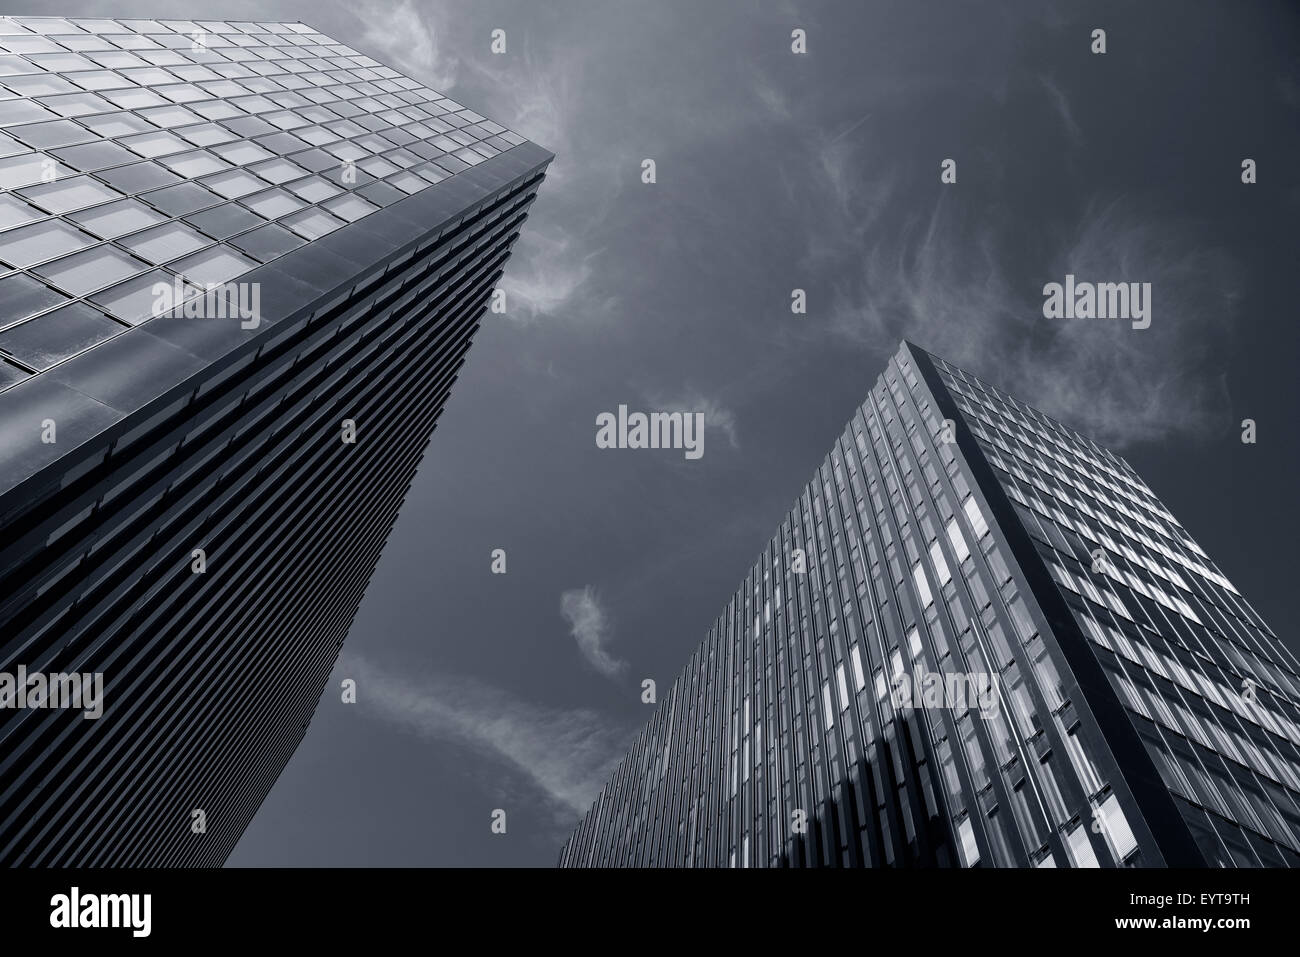 Blue-tinted black and white image of two identical skyscrapers, Germany, North Rhine-Westphalia, Dusseldorf - Stock Image